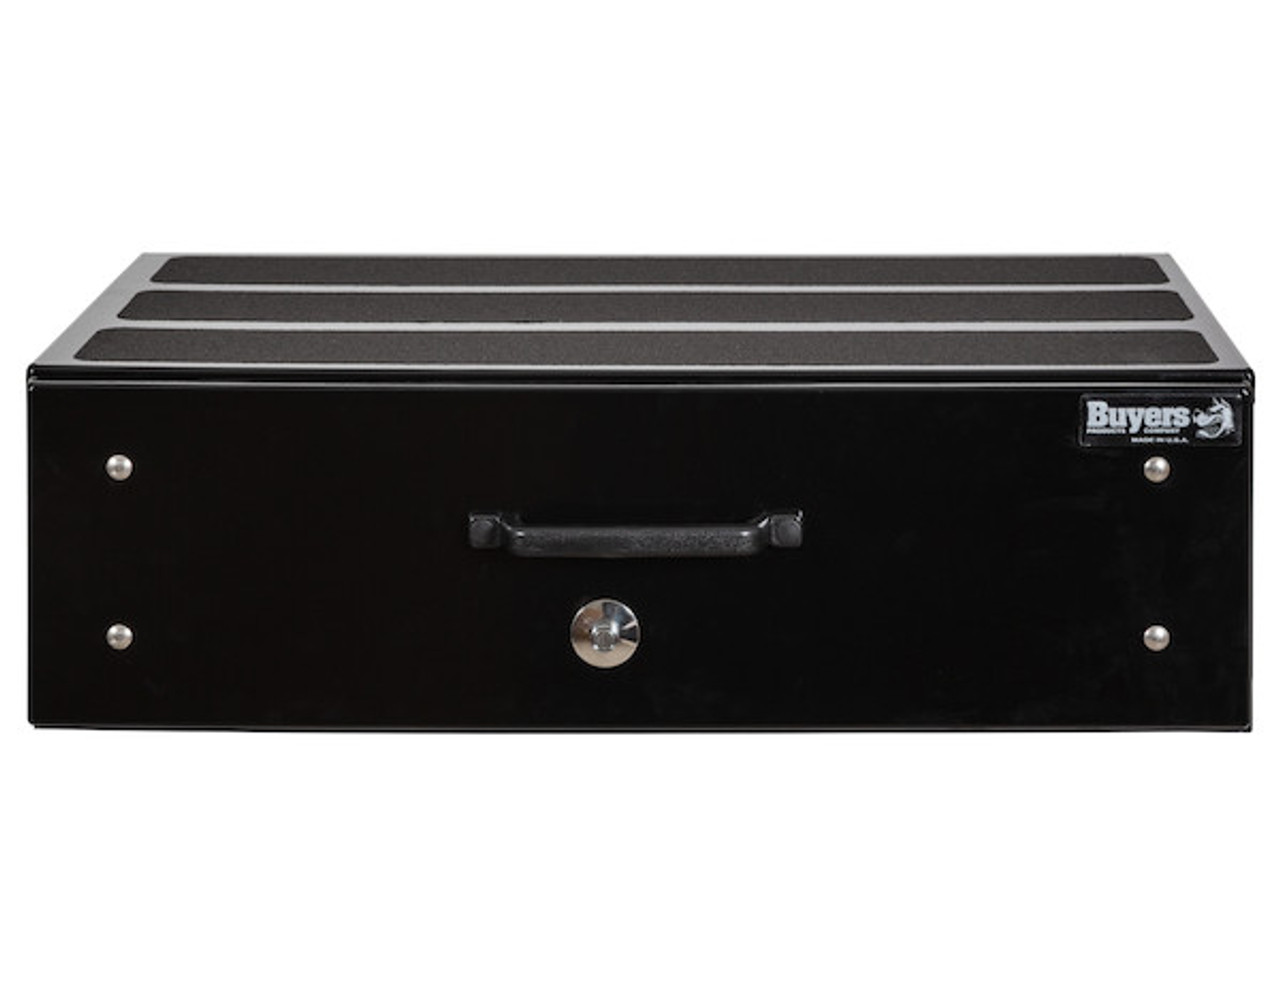 "1718320 BUYERS SMOOTH BLACK ALUMINUM SLIDE OUT TRUCK BED TOOLBOX 12""Hx24""Dx40""W PICTURE # 5"